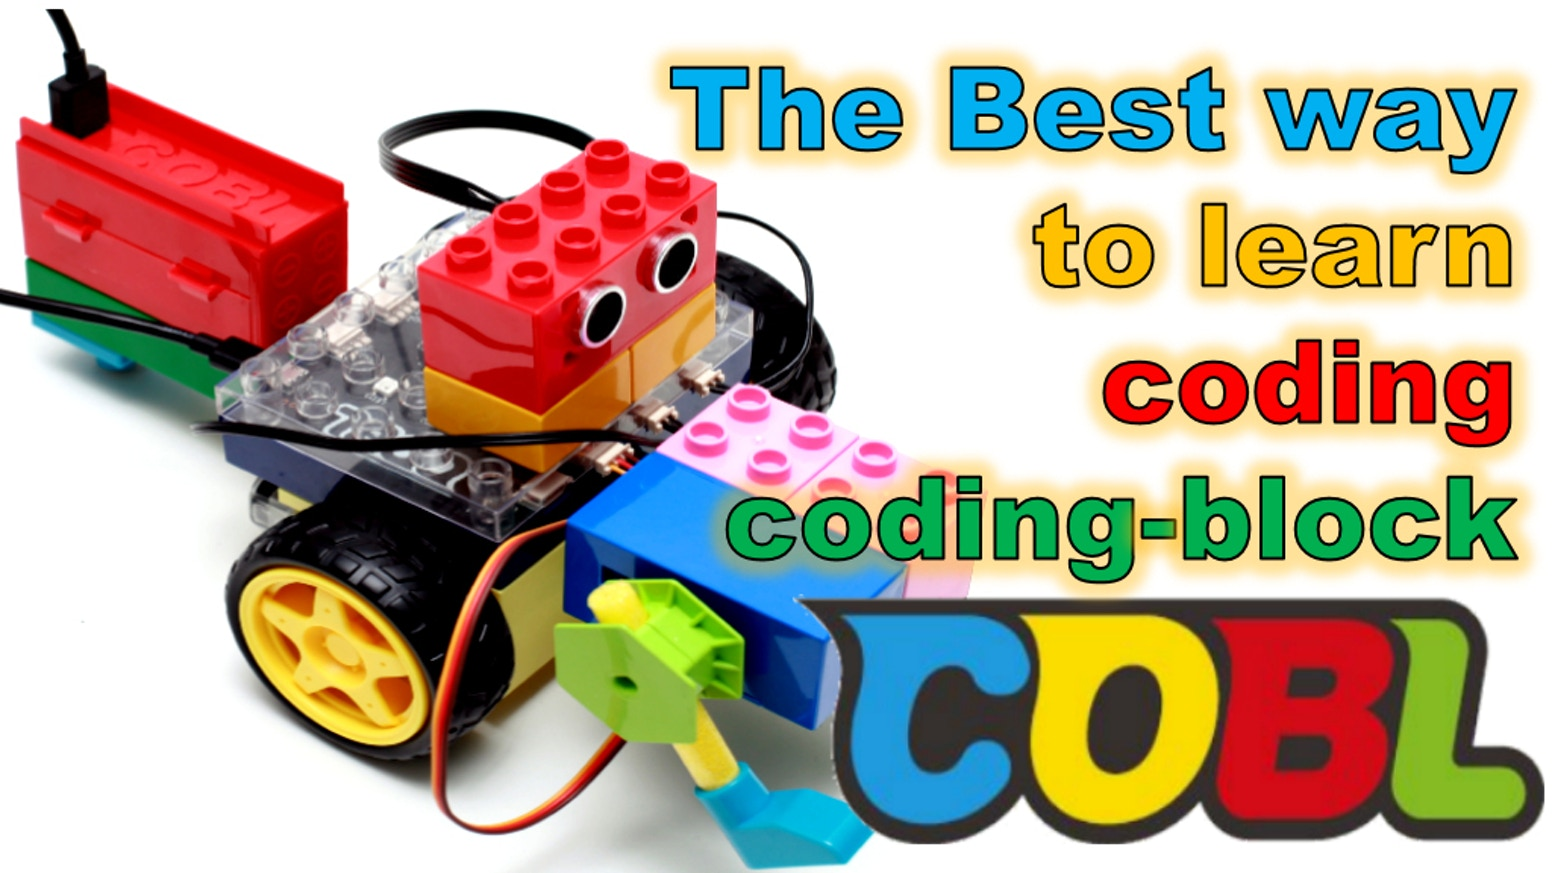 Coding-Block! COBL, Learn and Make Whatever You Want